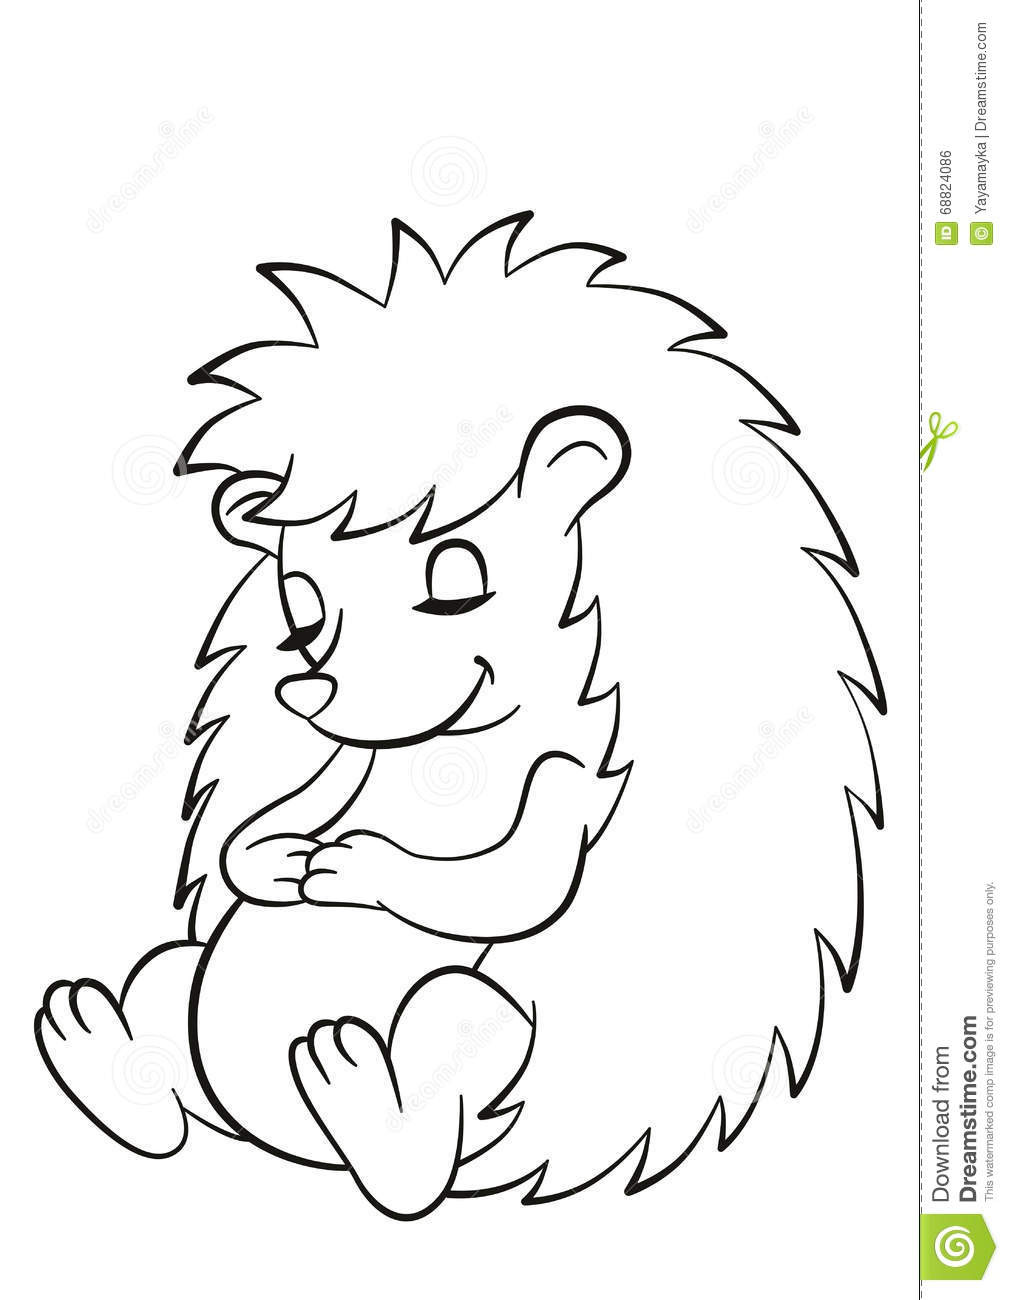 Hedgehog Coloring Pages  Little Cute Hedgehog Sits And Sleeps Stock Vector